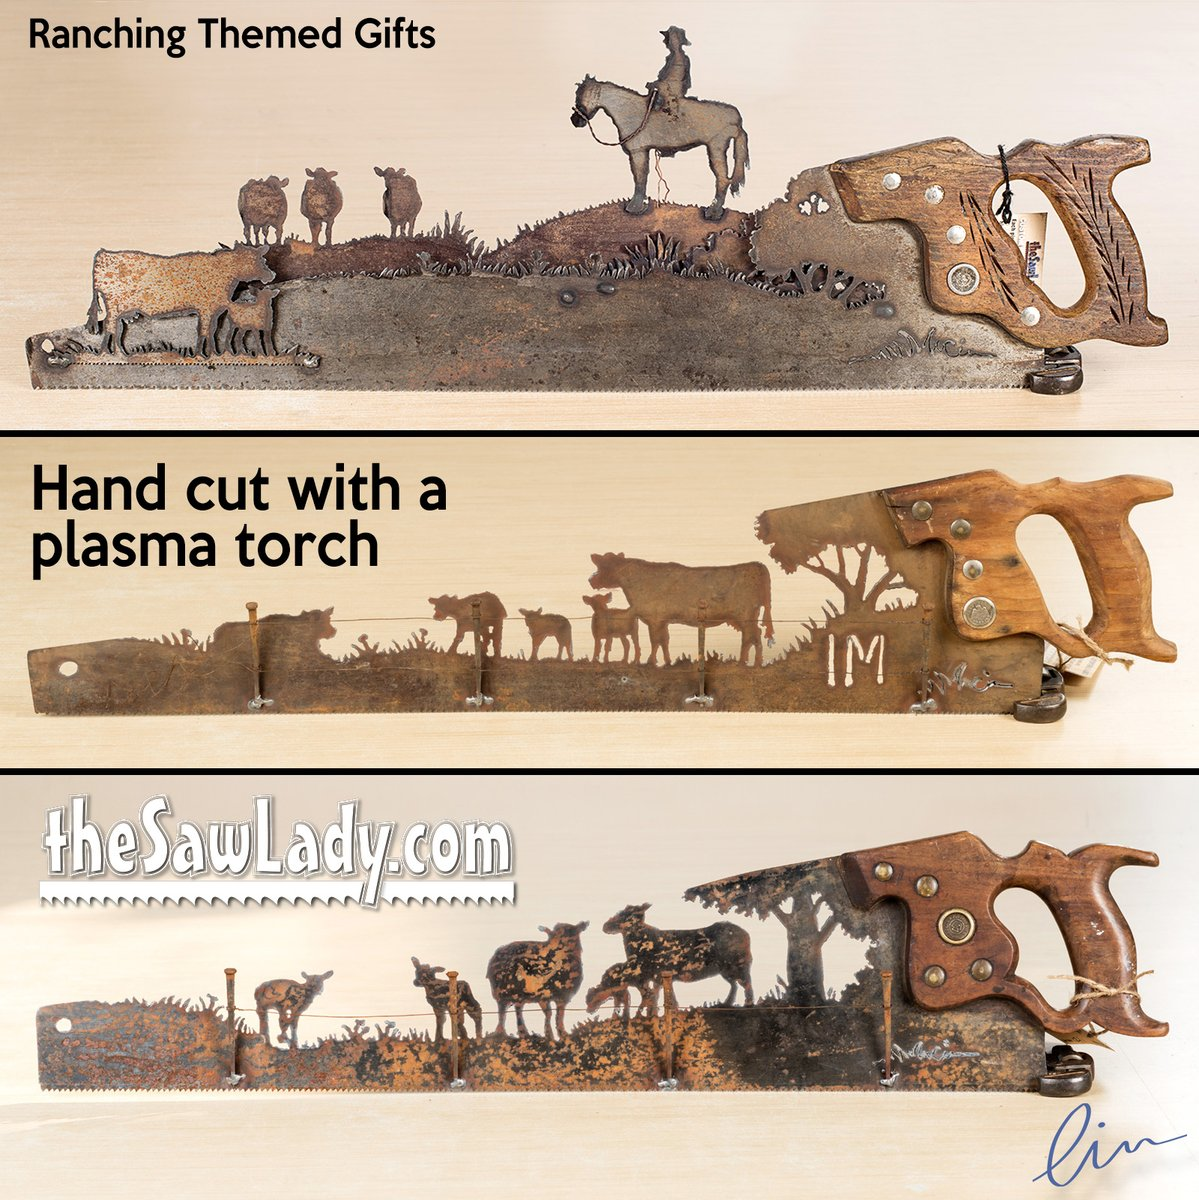 I've cut a LOT of cattle and ranch themed saws over the years. :)  You can order them with a name or a brand. . https://soo.nr/usUV . #ranching #ranch #farming #beef #sheep #farmlife #metalart #custommetalart #thesawlady #cindychinn #madeinnebraska #handmade pic.twitter.com/VAjB5M6zvn